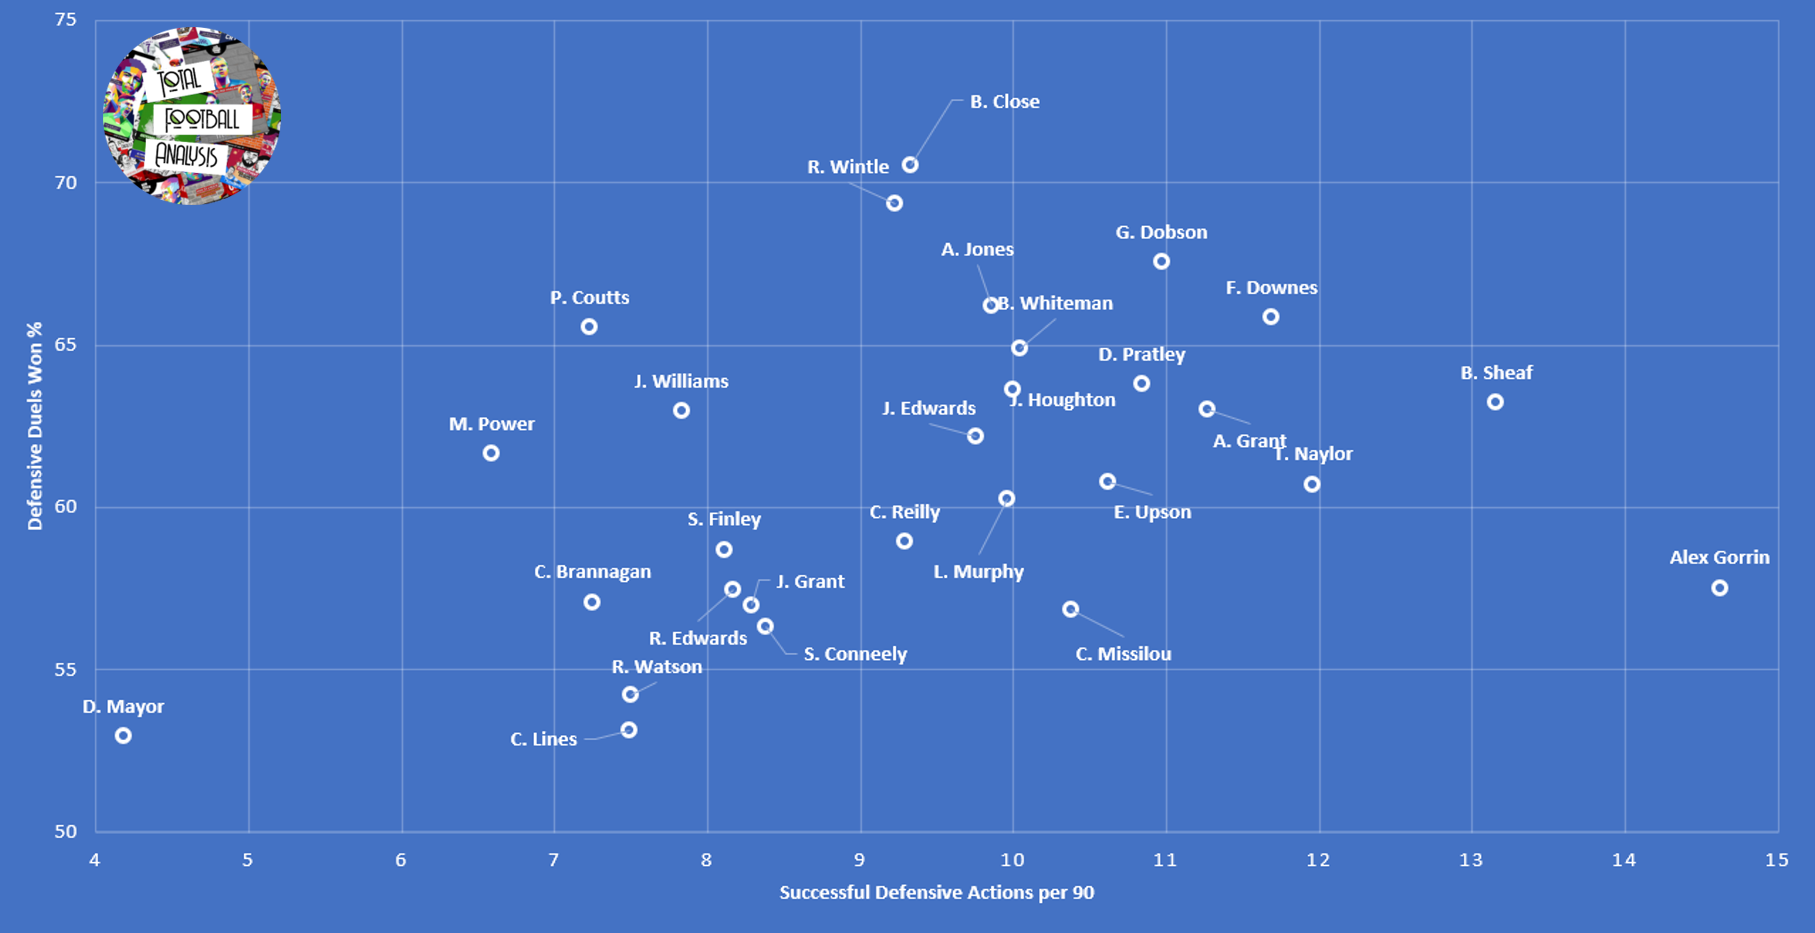 Data Analysis: Finding the best central midfielders in League 1